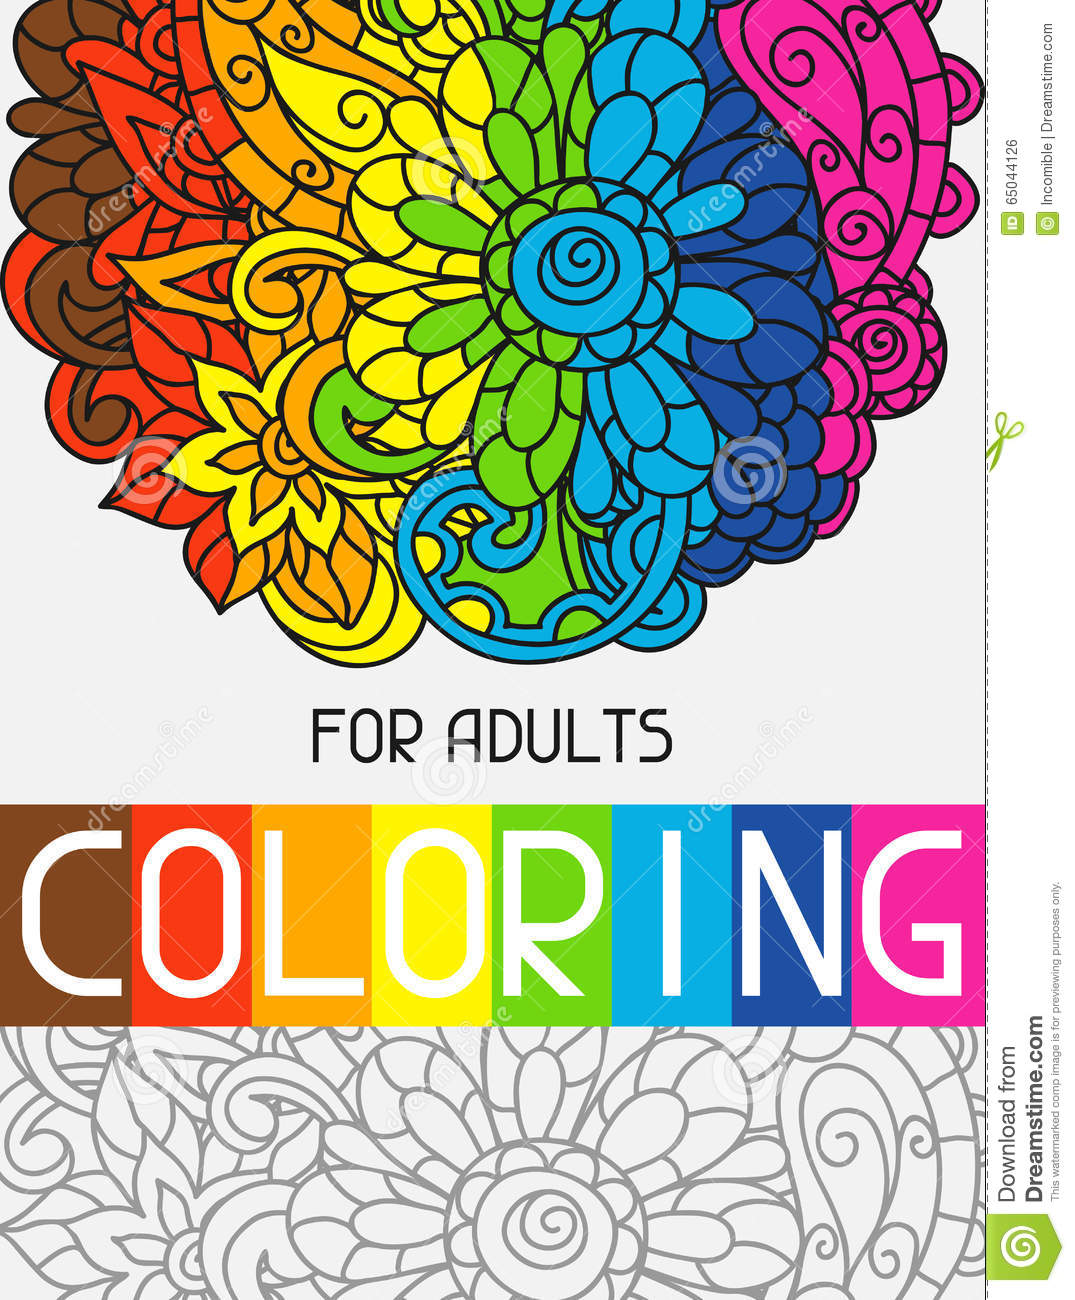 Adult Coloring Book Design For Cover  Illustration Stock Vector